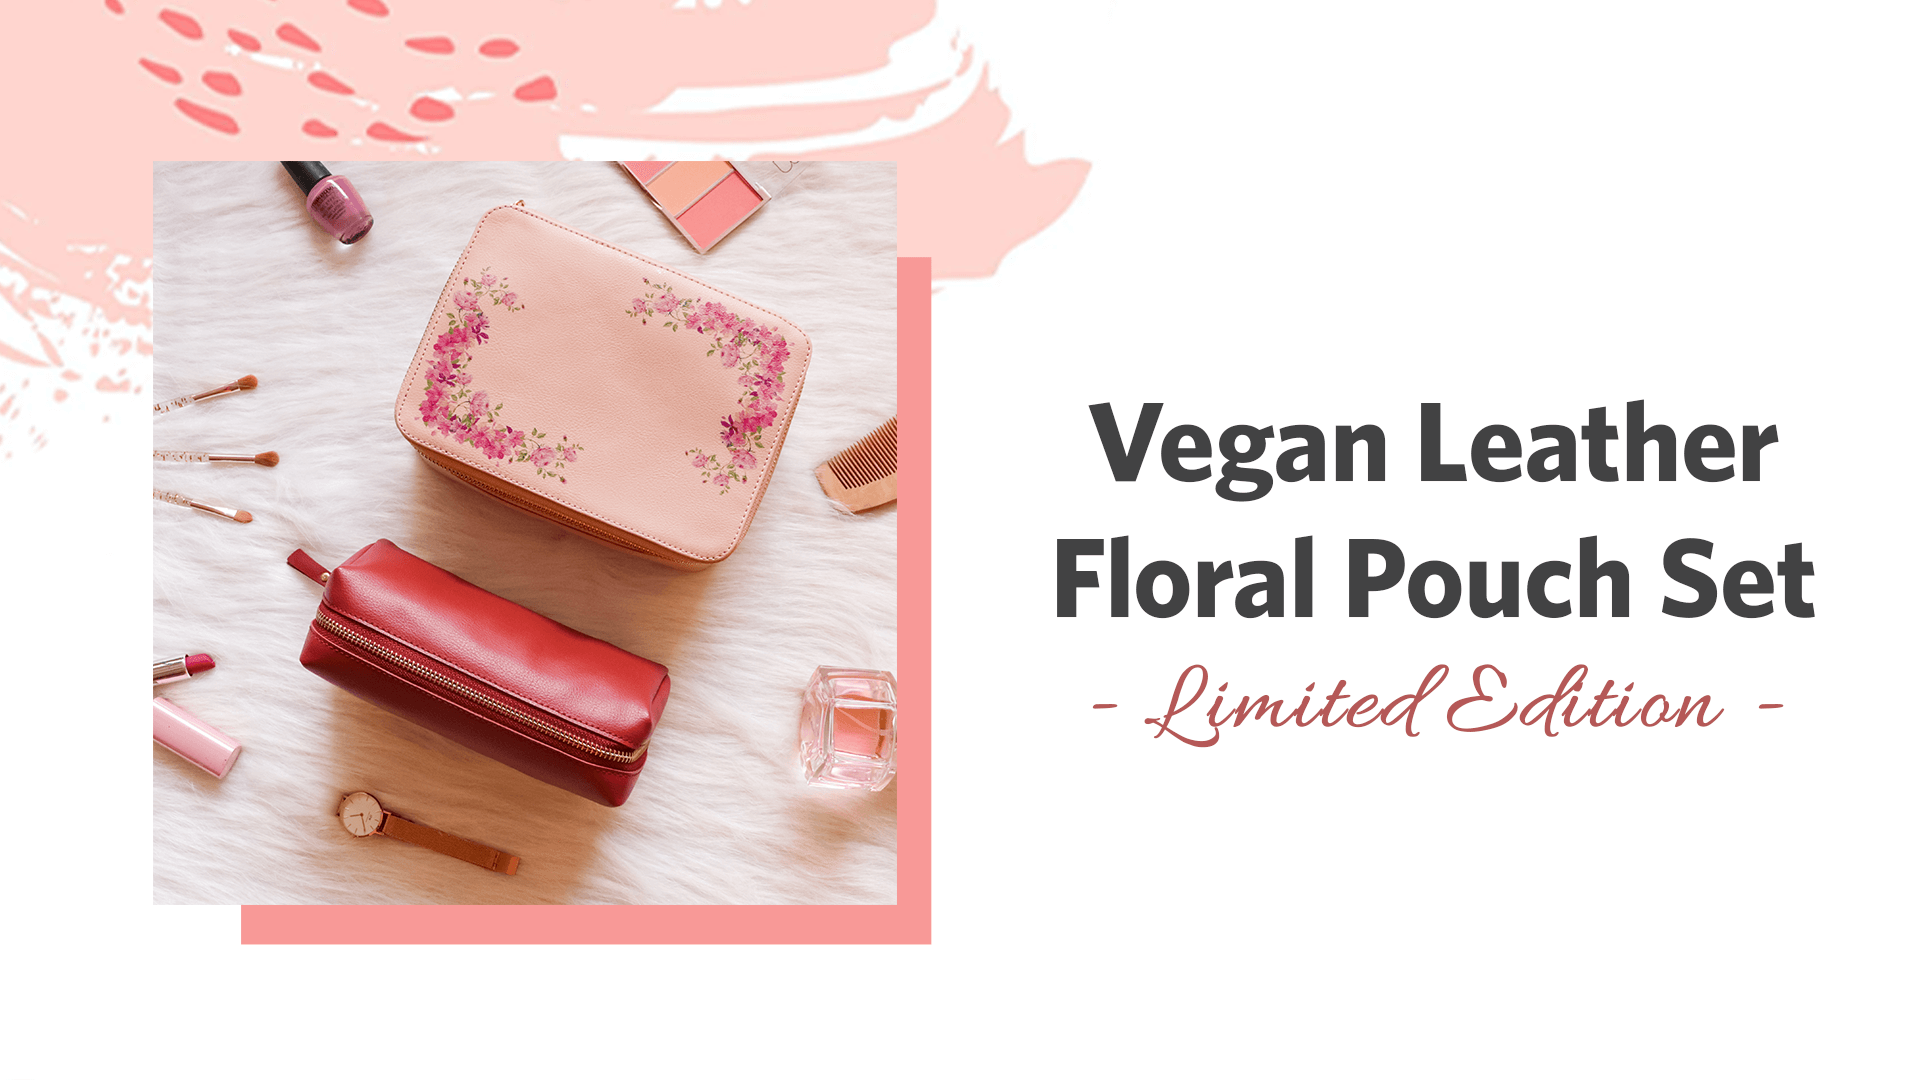 Vegan leather floral pouch set